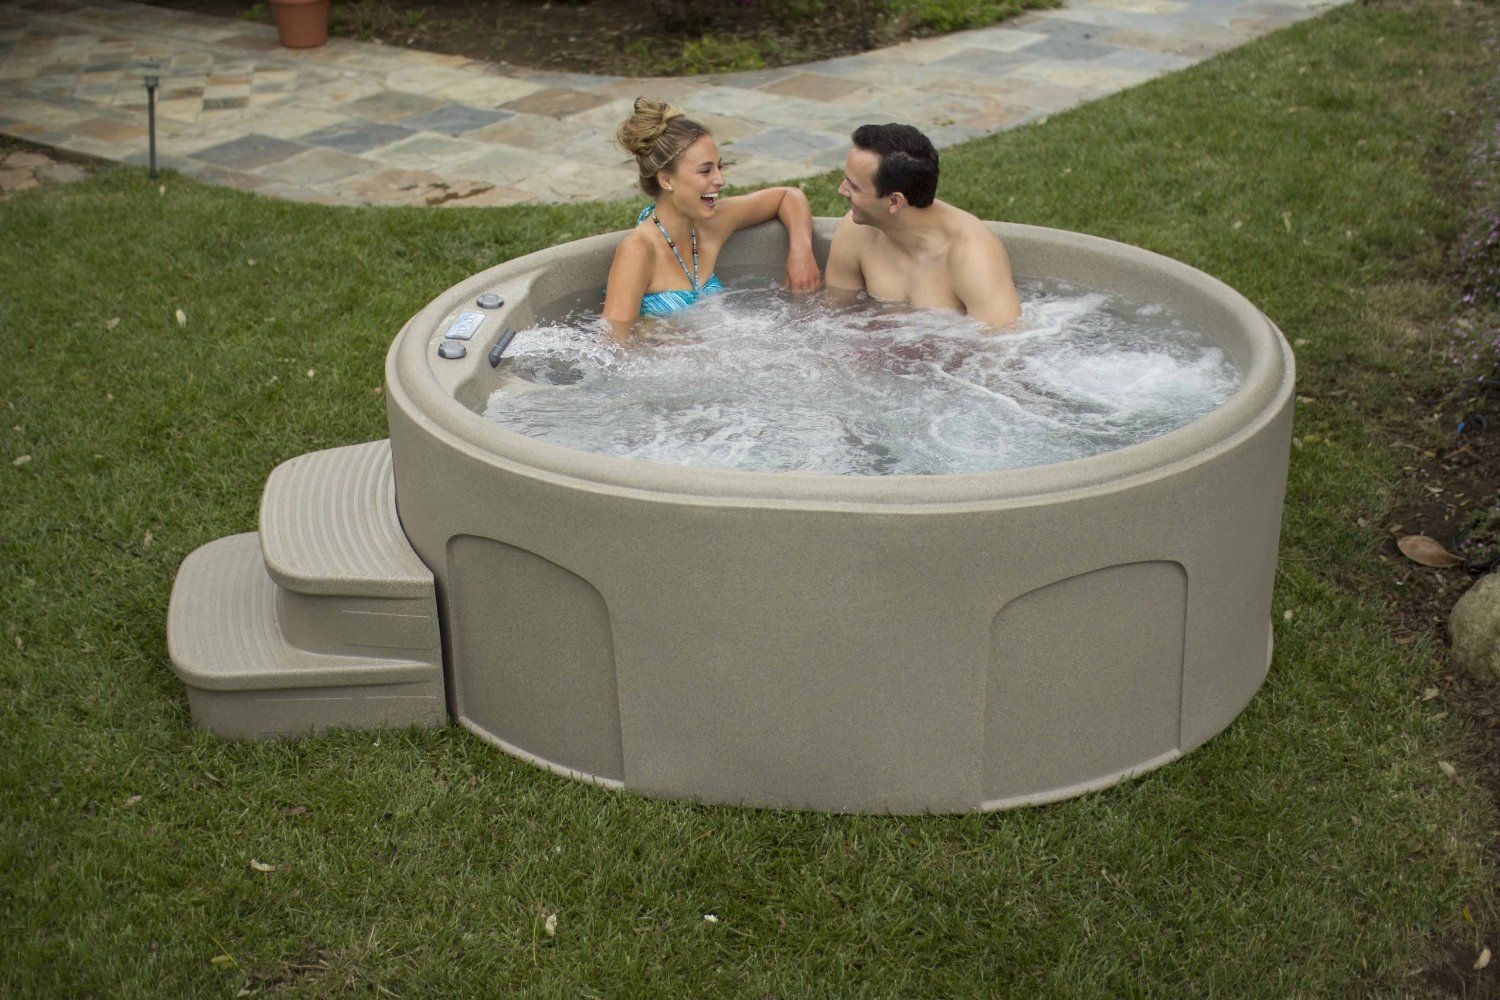 person tubs customer hot tub helpful spa in product bubble inflatable amazon outdoor pure intex com pcr l lifesmart heated best image rated portable reviews